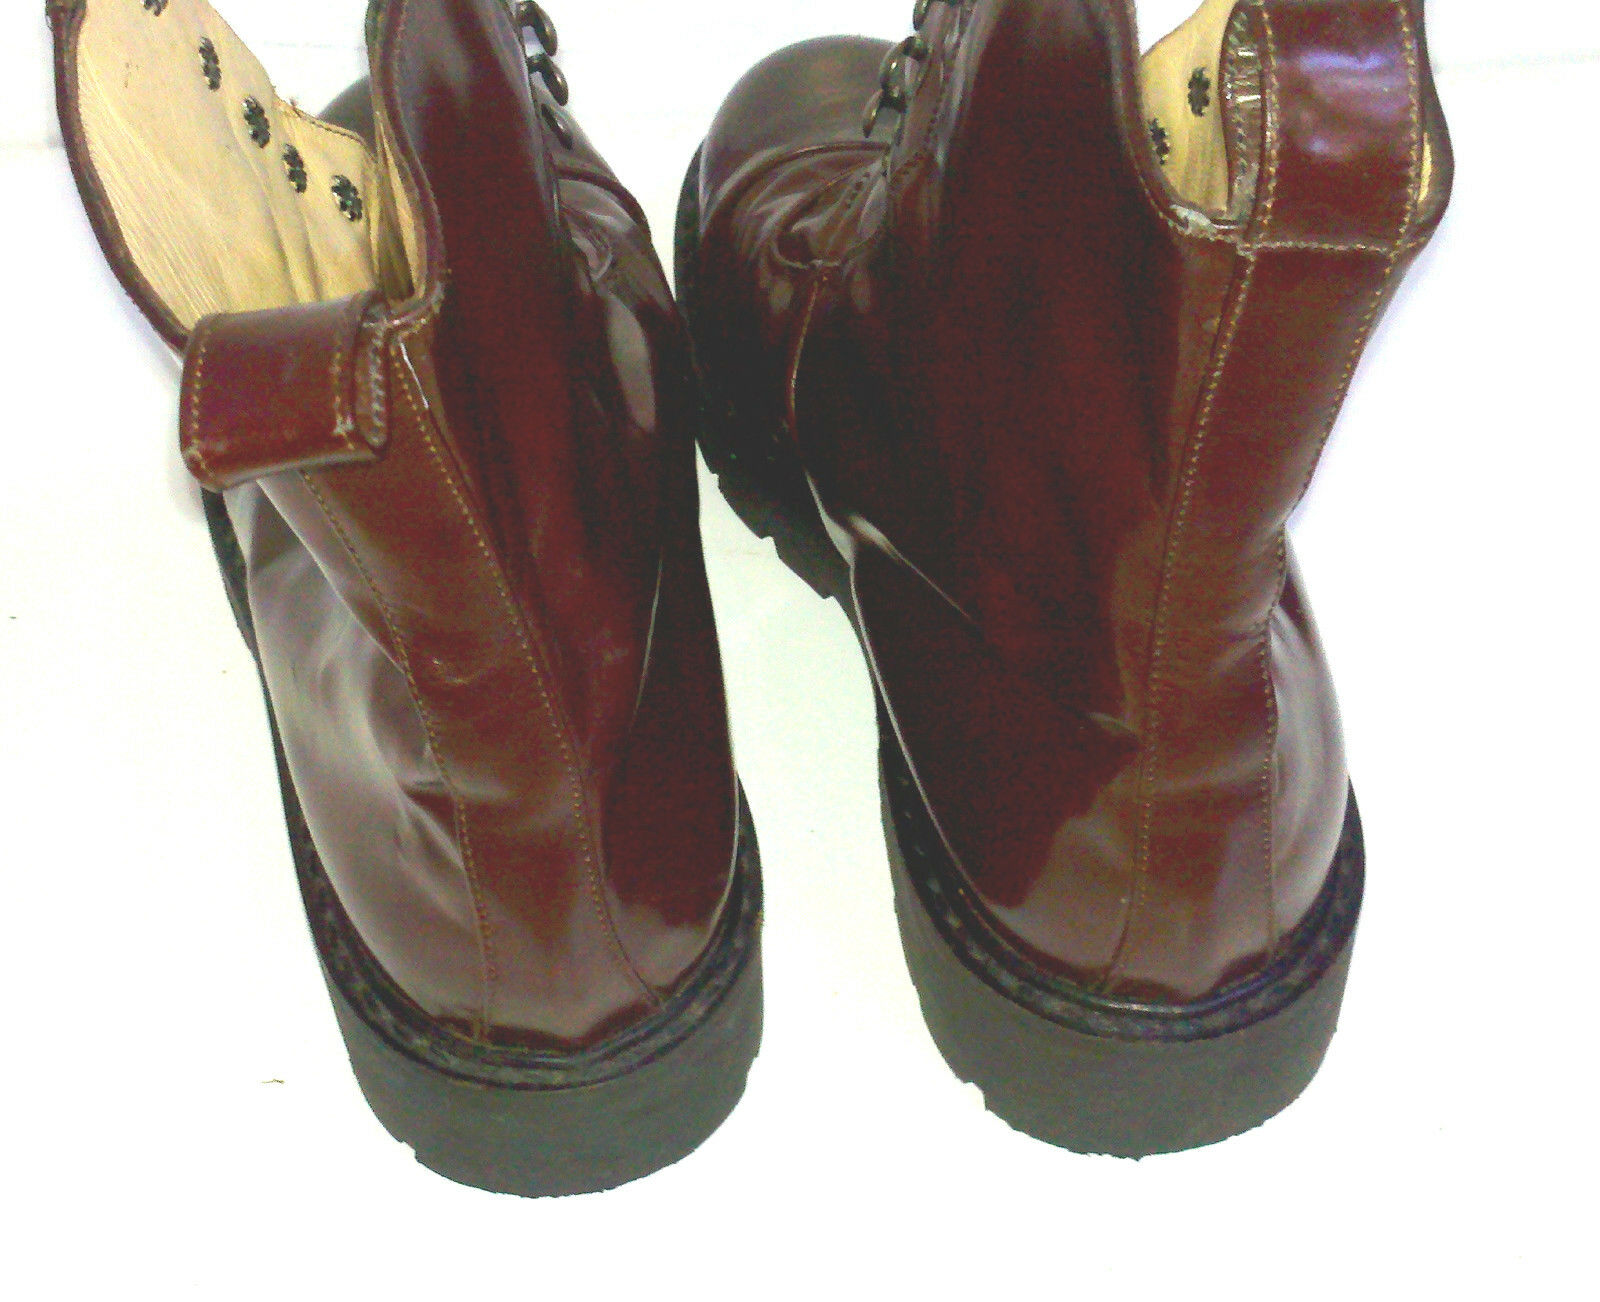 SUSAN MENNIS HANDMADE ITALIAN Stiefel BROWN 6 PATENT LEATHER ANKLE S 6 BROWN steam punk 904265